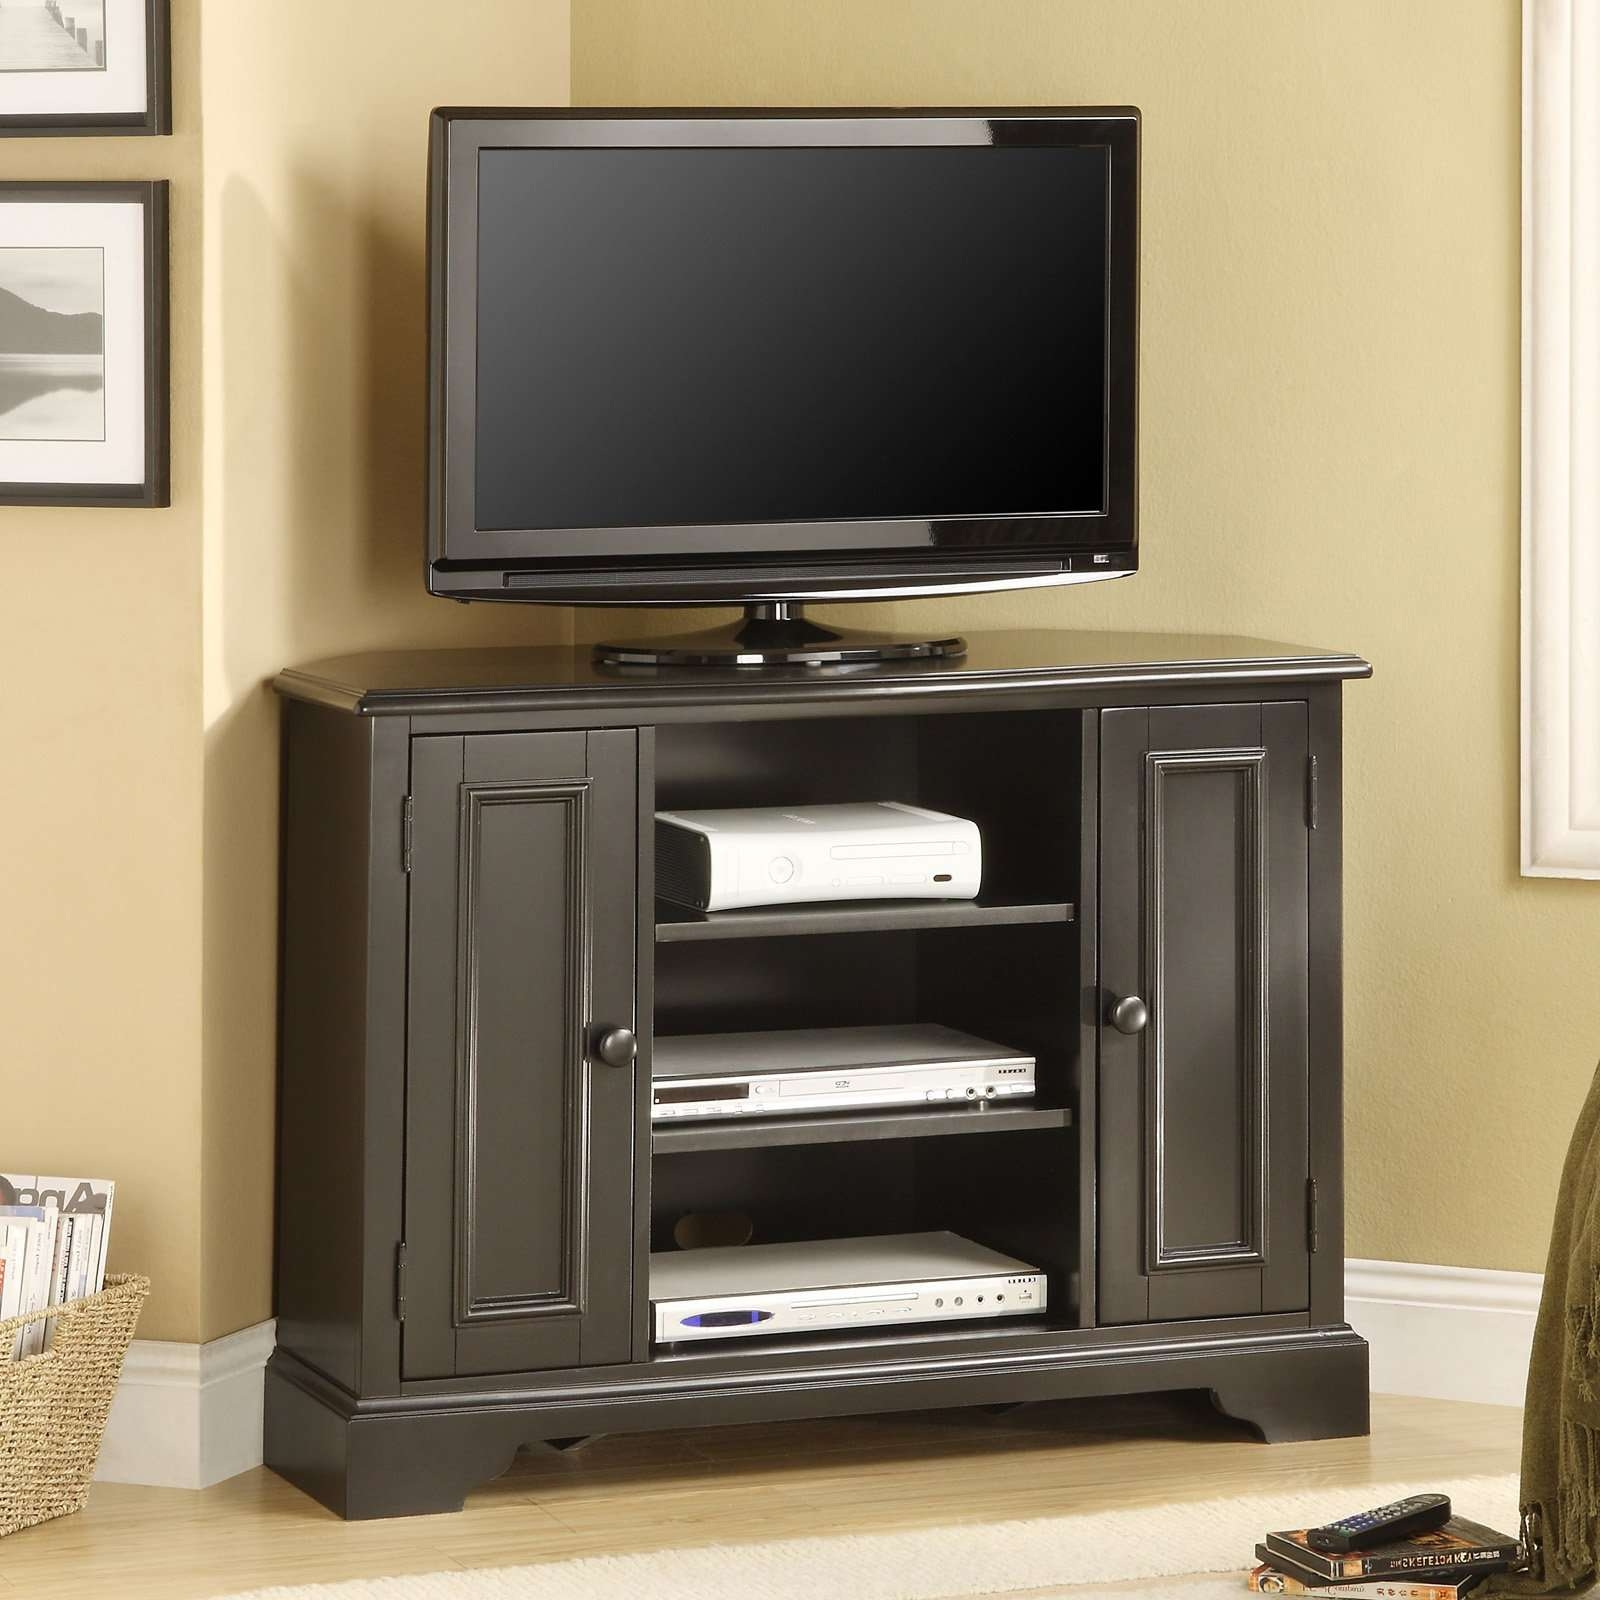 Black Melamine Finished Solid Wood Tall Corner Tv Stand For Regarding Black Wood Corner Tv Stands (View 9 of 15)